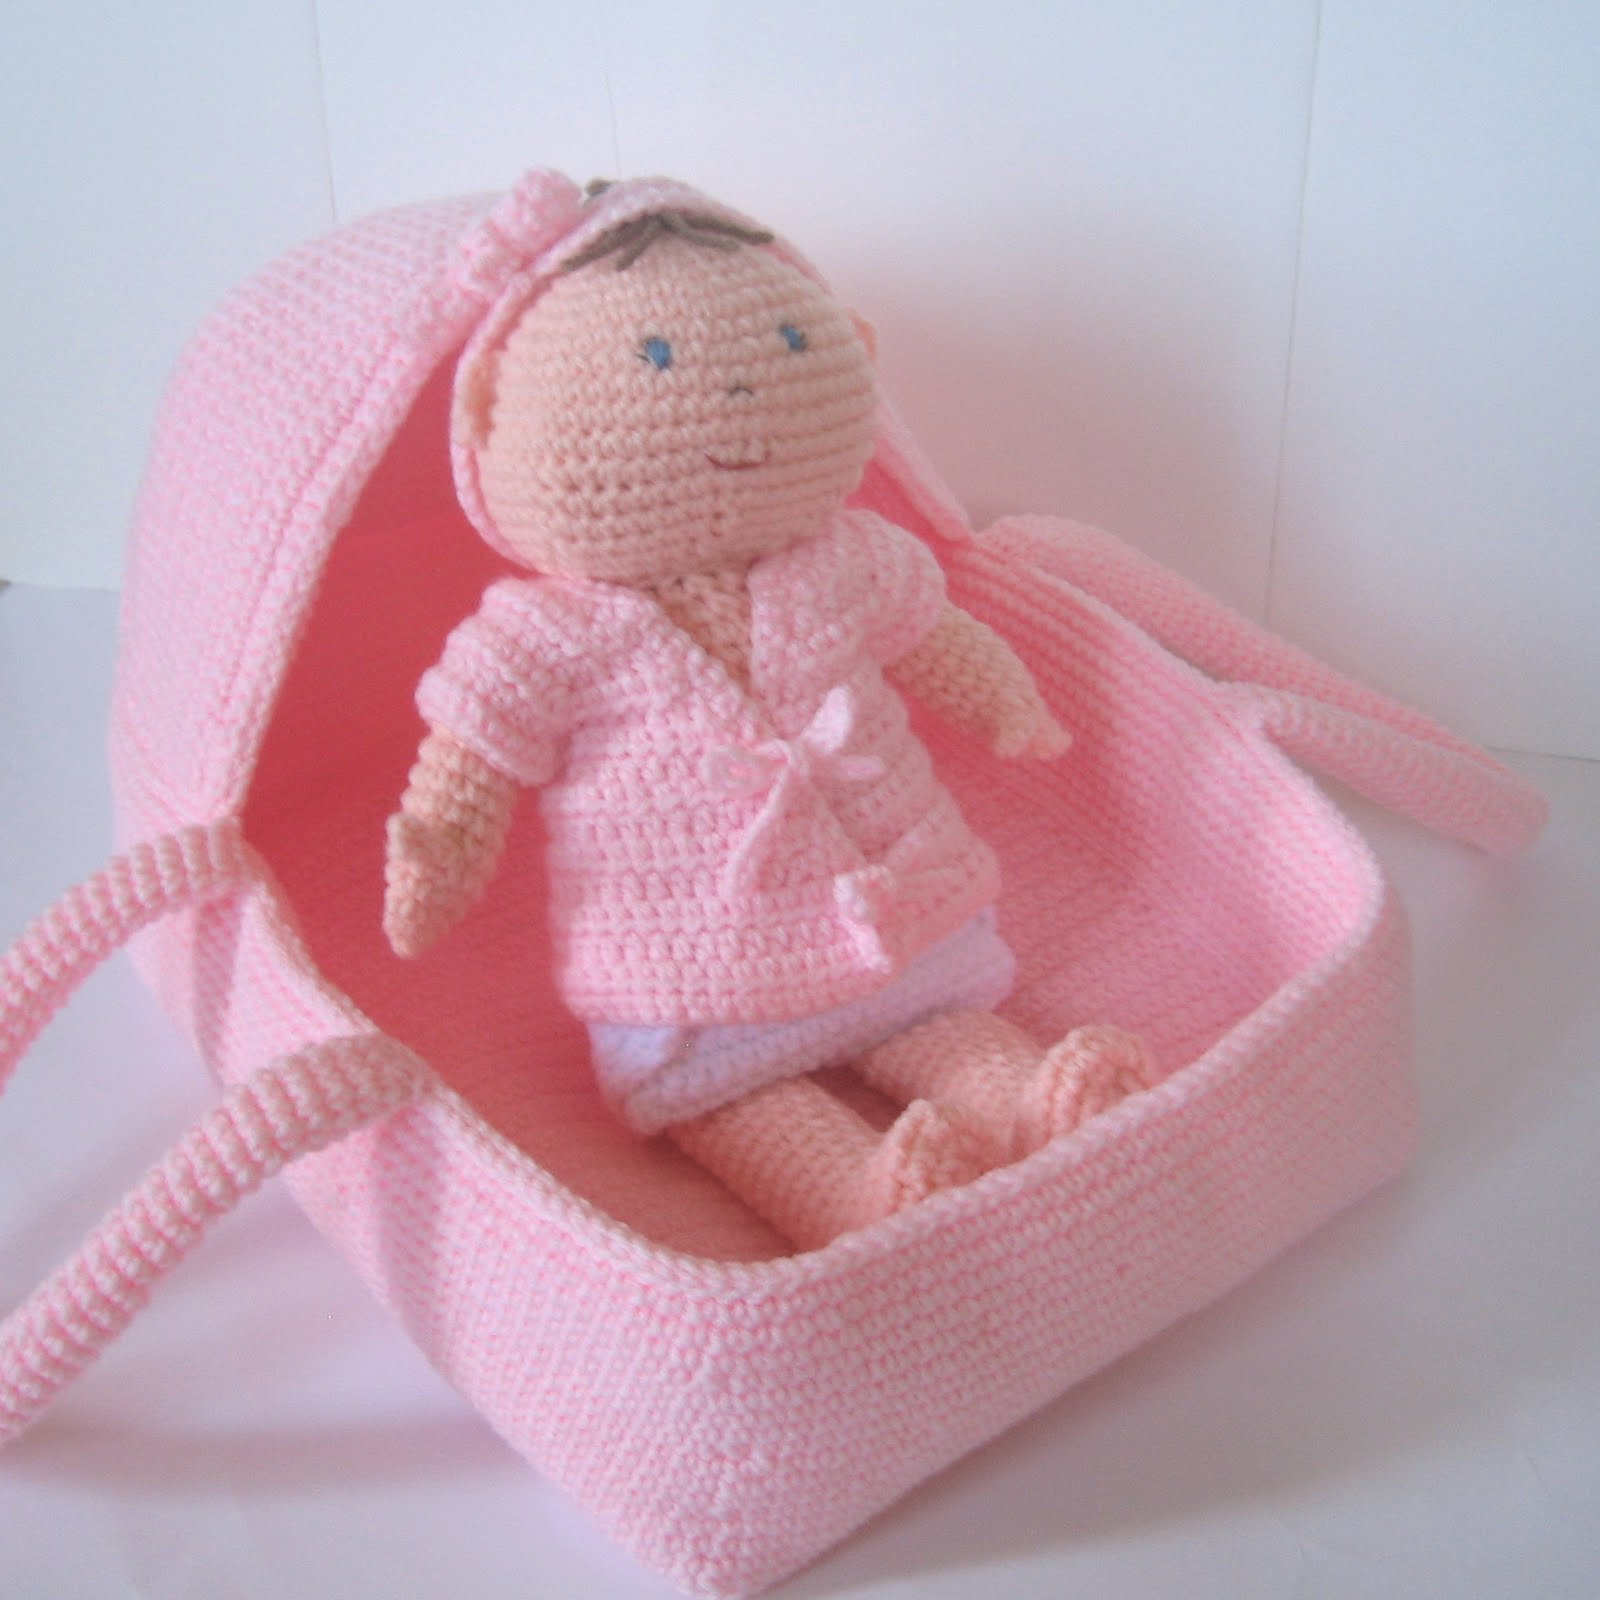 CROCHET N PLAY DESIGNS: New Crochet Pattern: Baby Doll ...